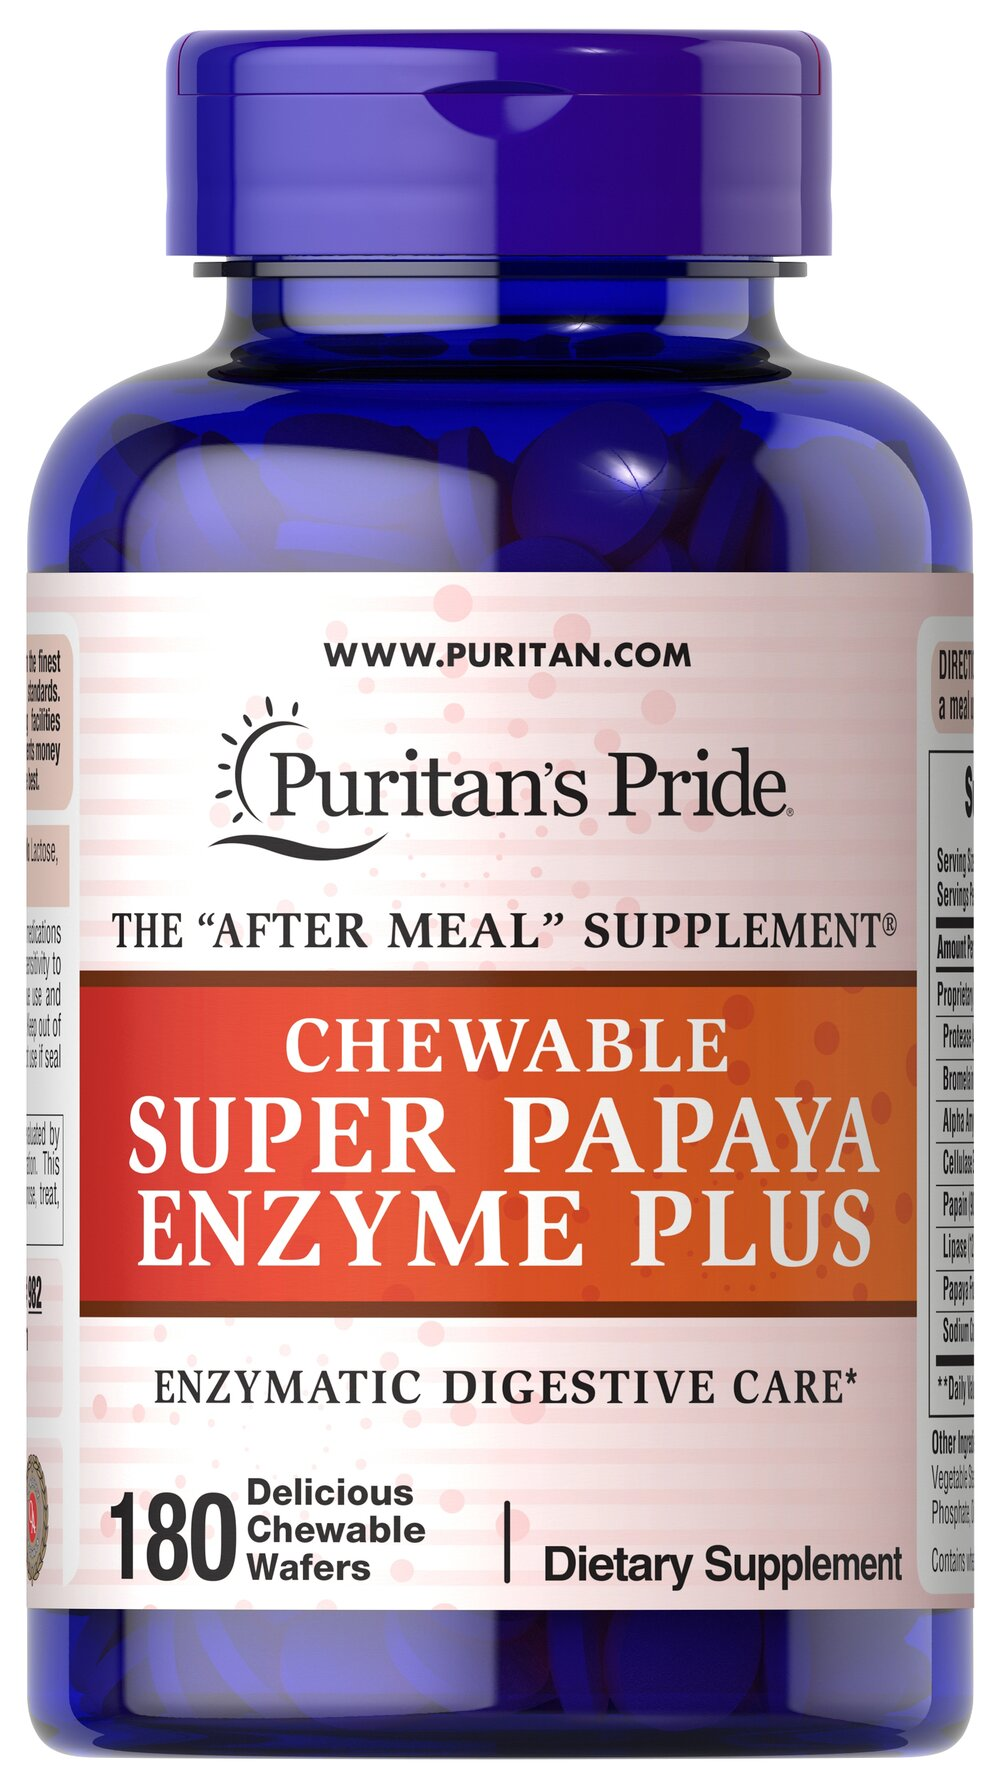 Chewable Super Papaya Enzyme Plus <p>These delicious tablets are made from 100% natural ingredients in a base containing peppermint and chlorophyll (for refreshing taste and sweet breath).</p> <p>Papain is a proteolytic enzyme and a popular ingredient in dietary supplements used for digestion.**</p> <p> Taken after meals, it is a perfect natural supplement that may assist in digestion. **</p>  180 Chewables  $11.99